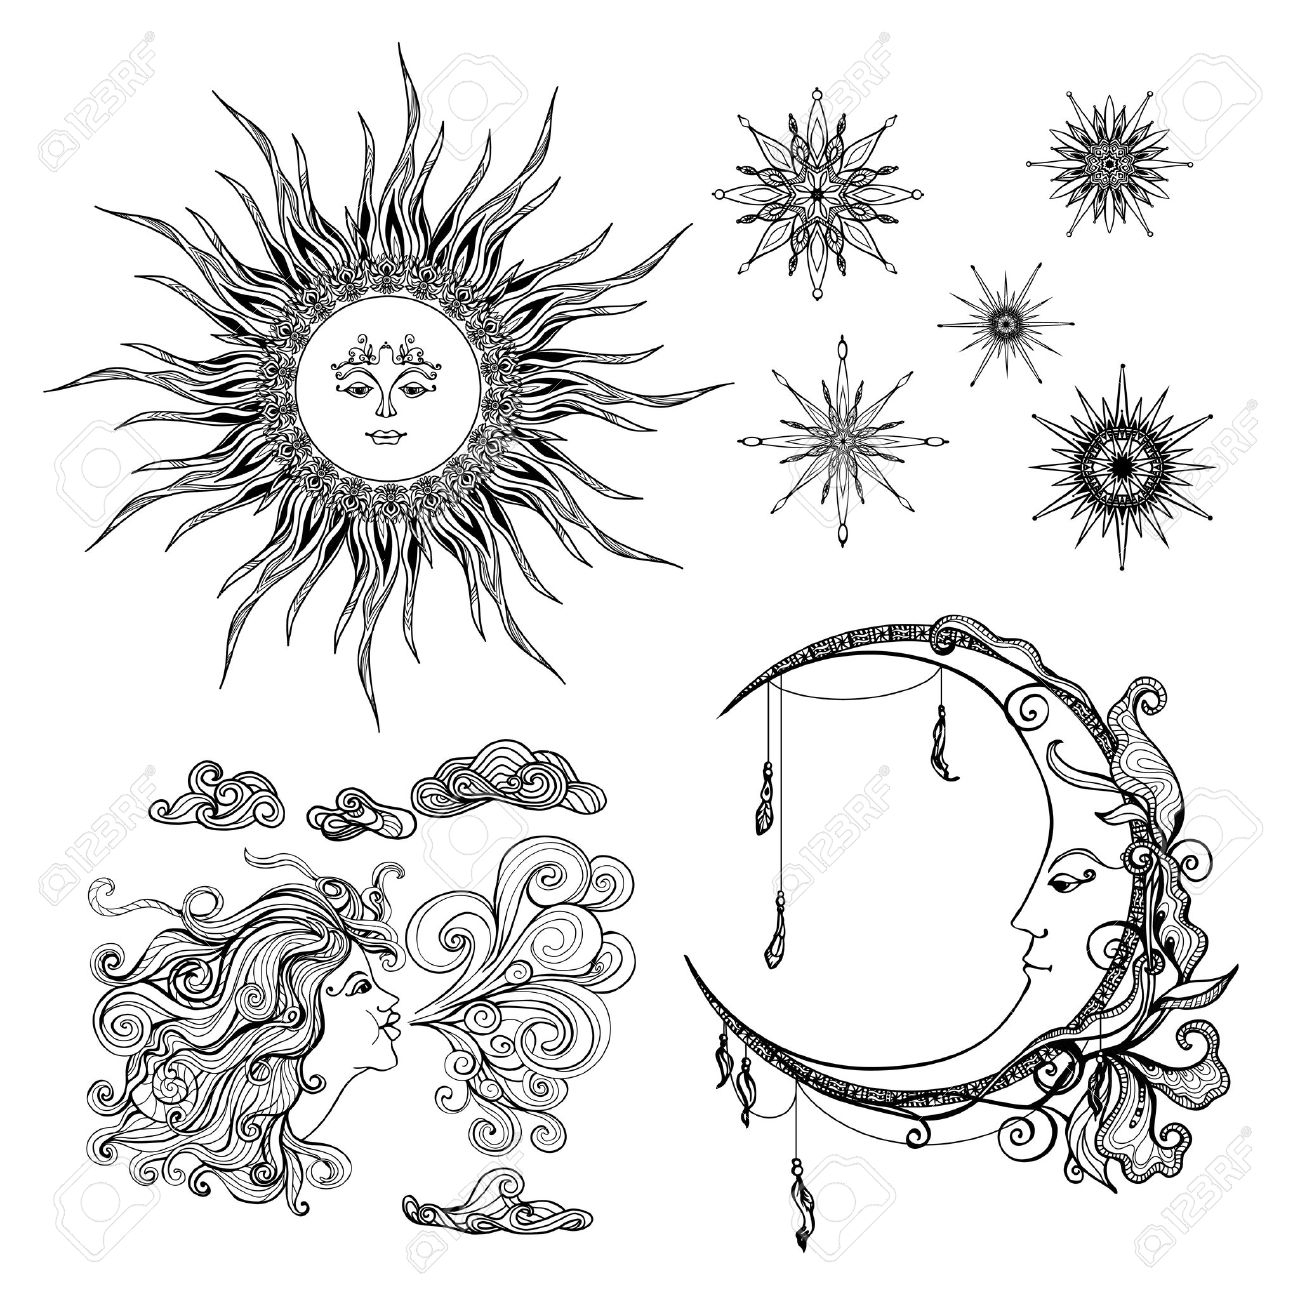 Fairytale style sun moon and wind antropomorphic symbols set fairytale style sun moon and wind antropomorphic symbols set isolated vector illustration stock vector 47628493 biocorpaavc Images